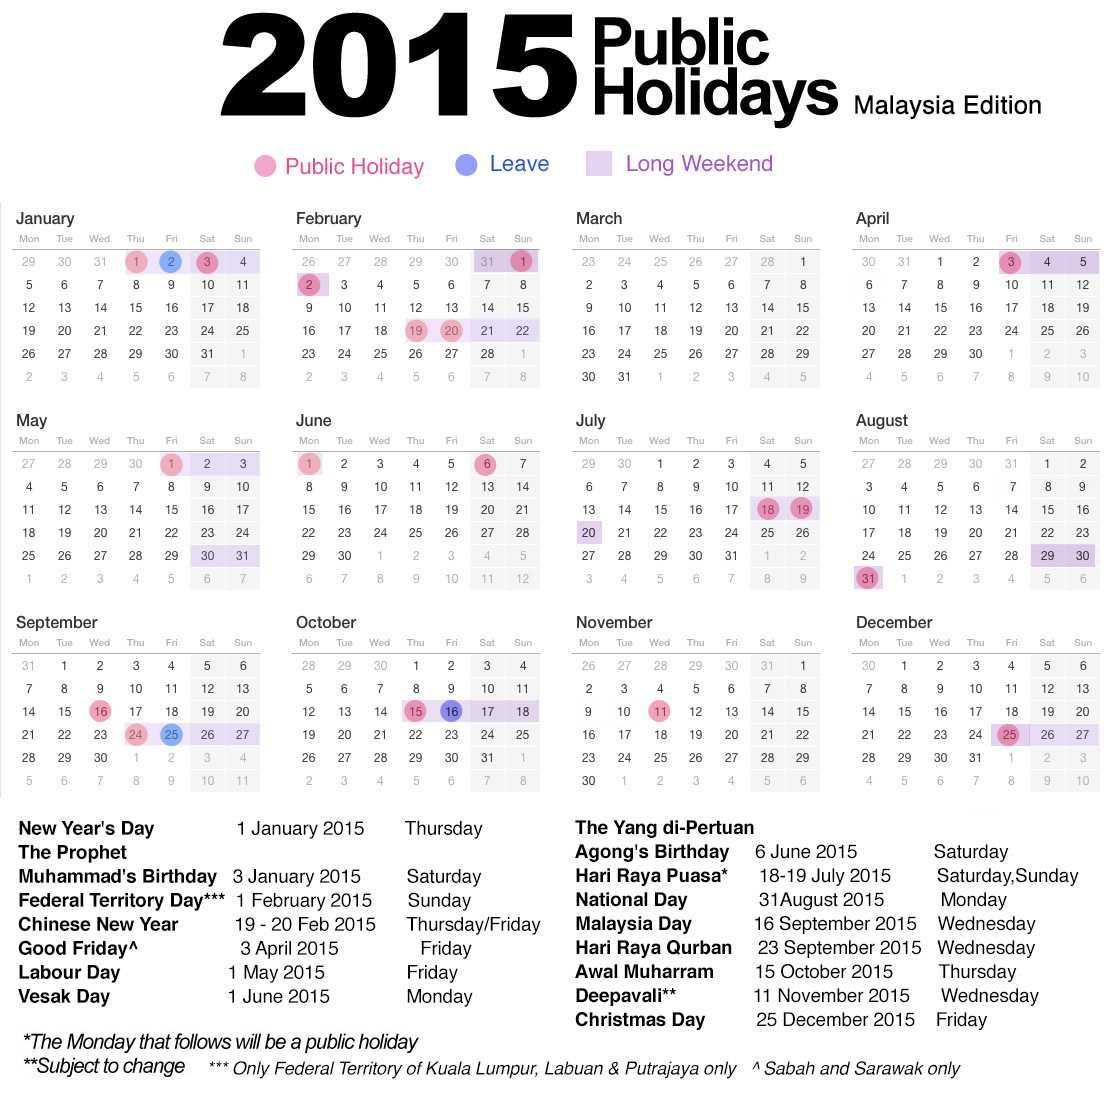 List of government holidays 2015 | MISCELLANEOUS | Pinterest ...